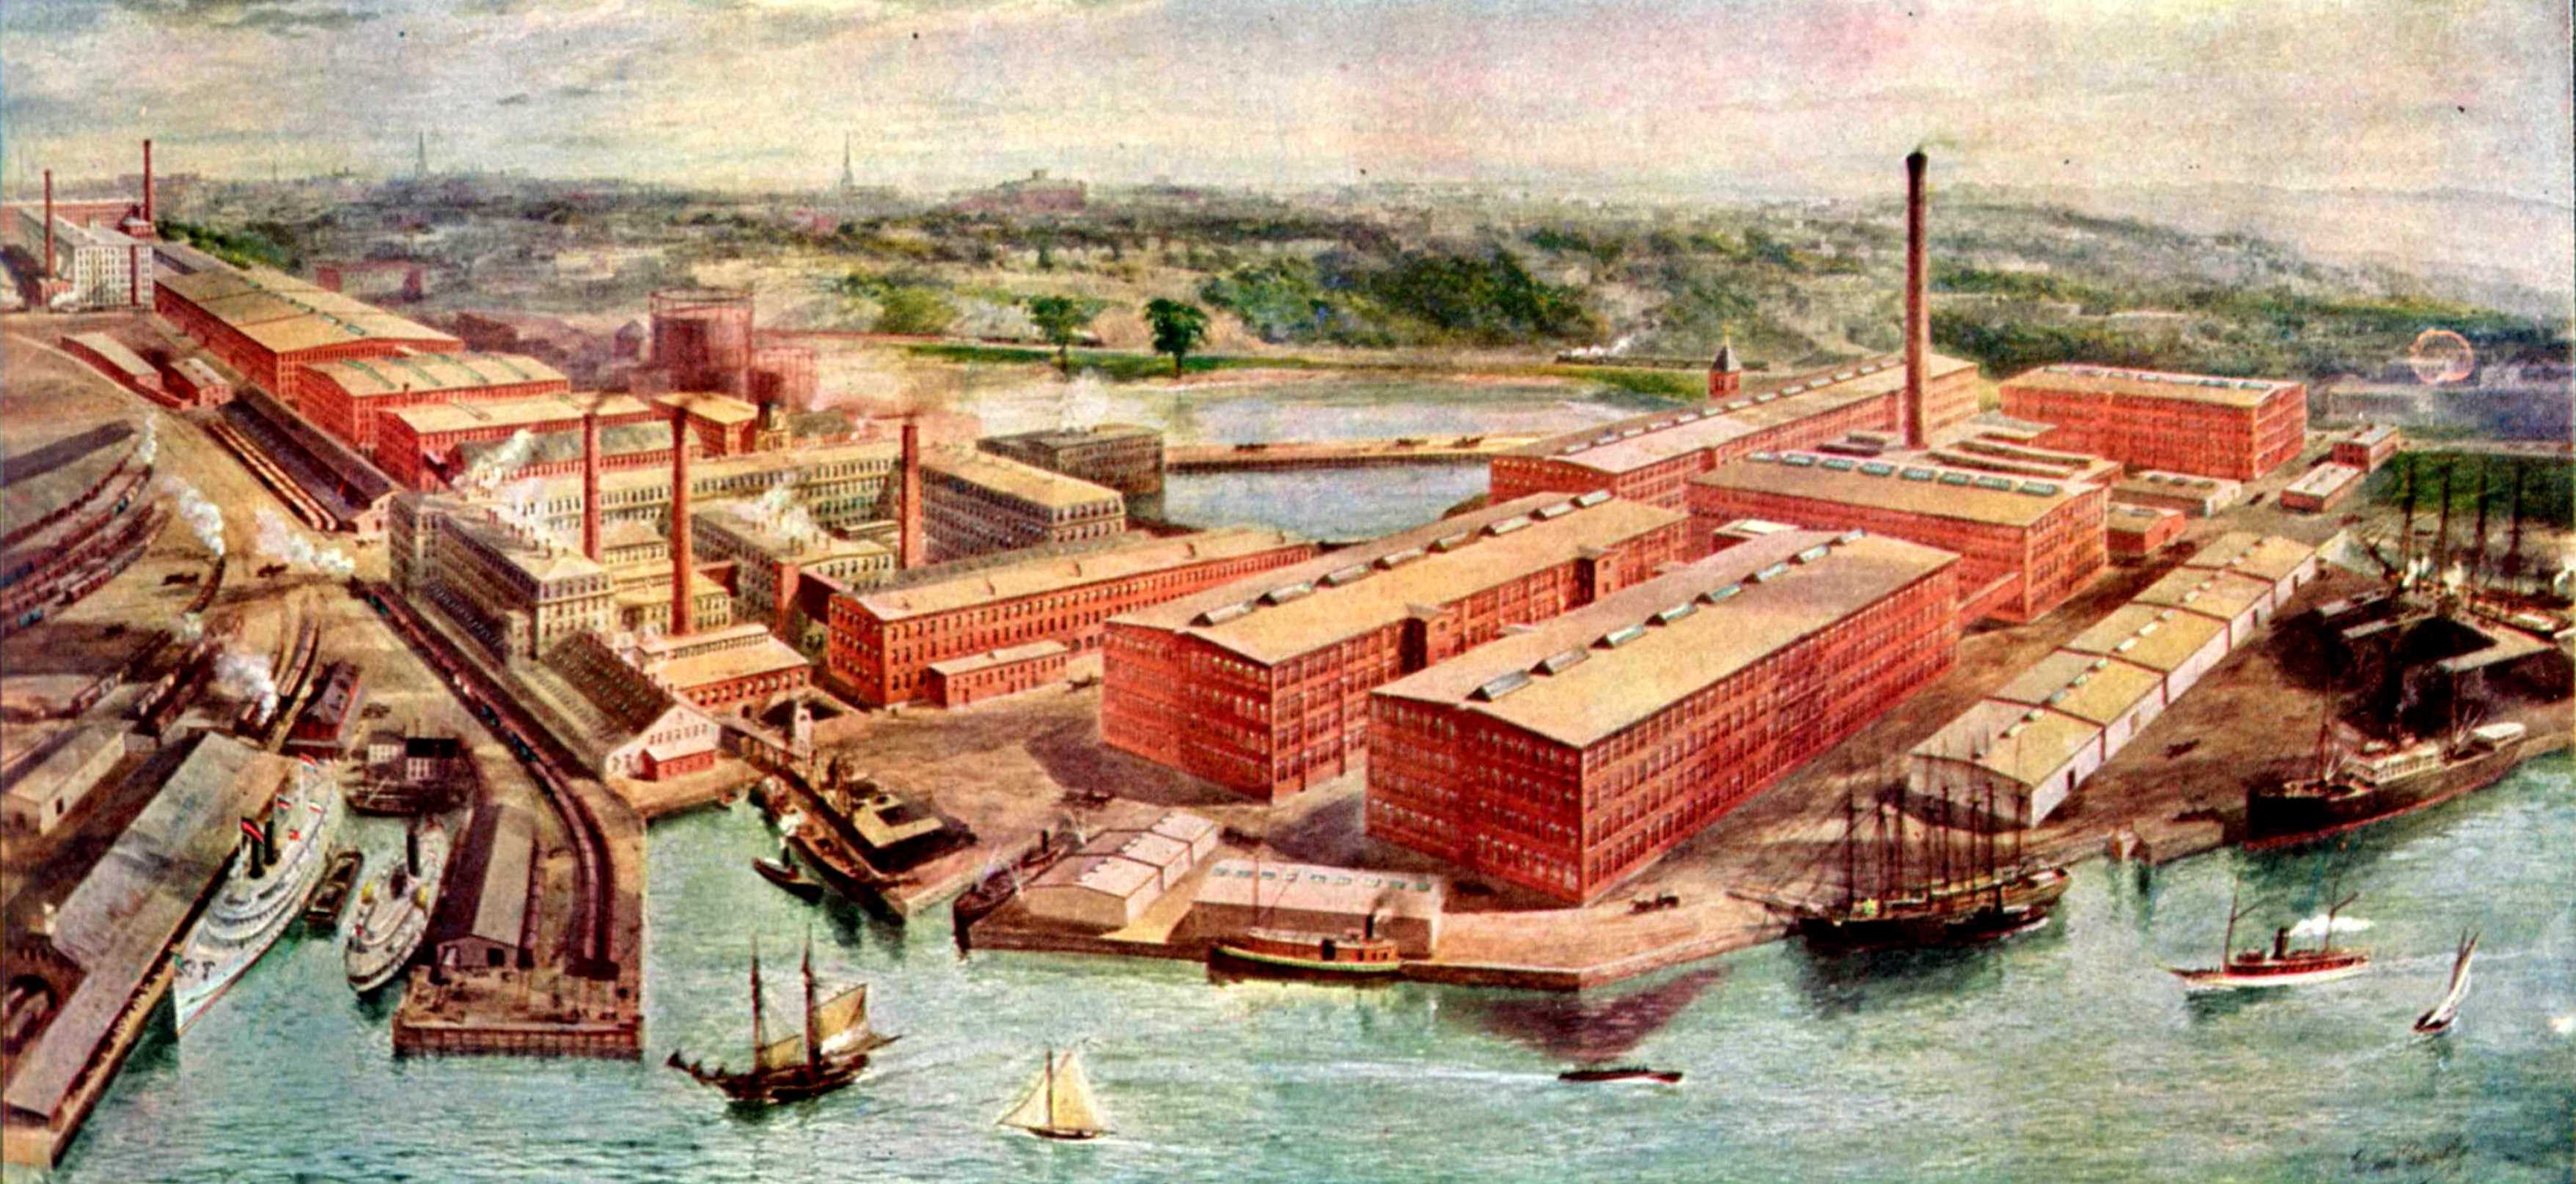 American Printing Company (Fall River Iron Works) - Wikipedia